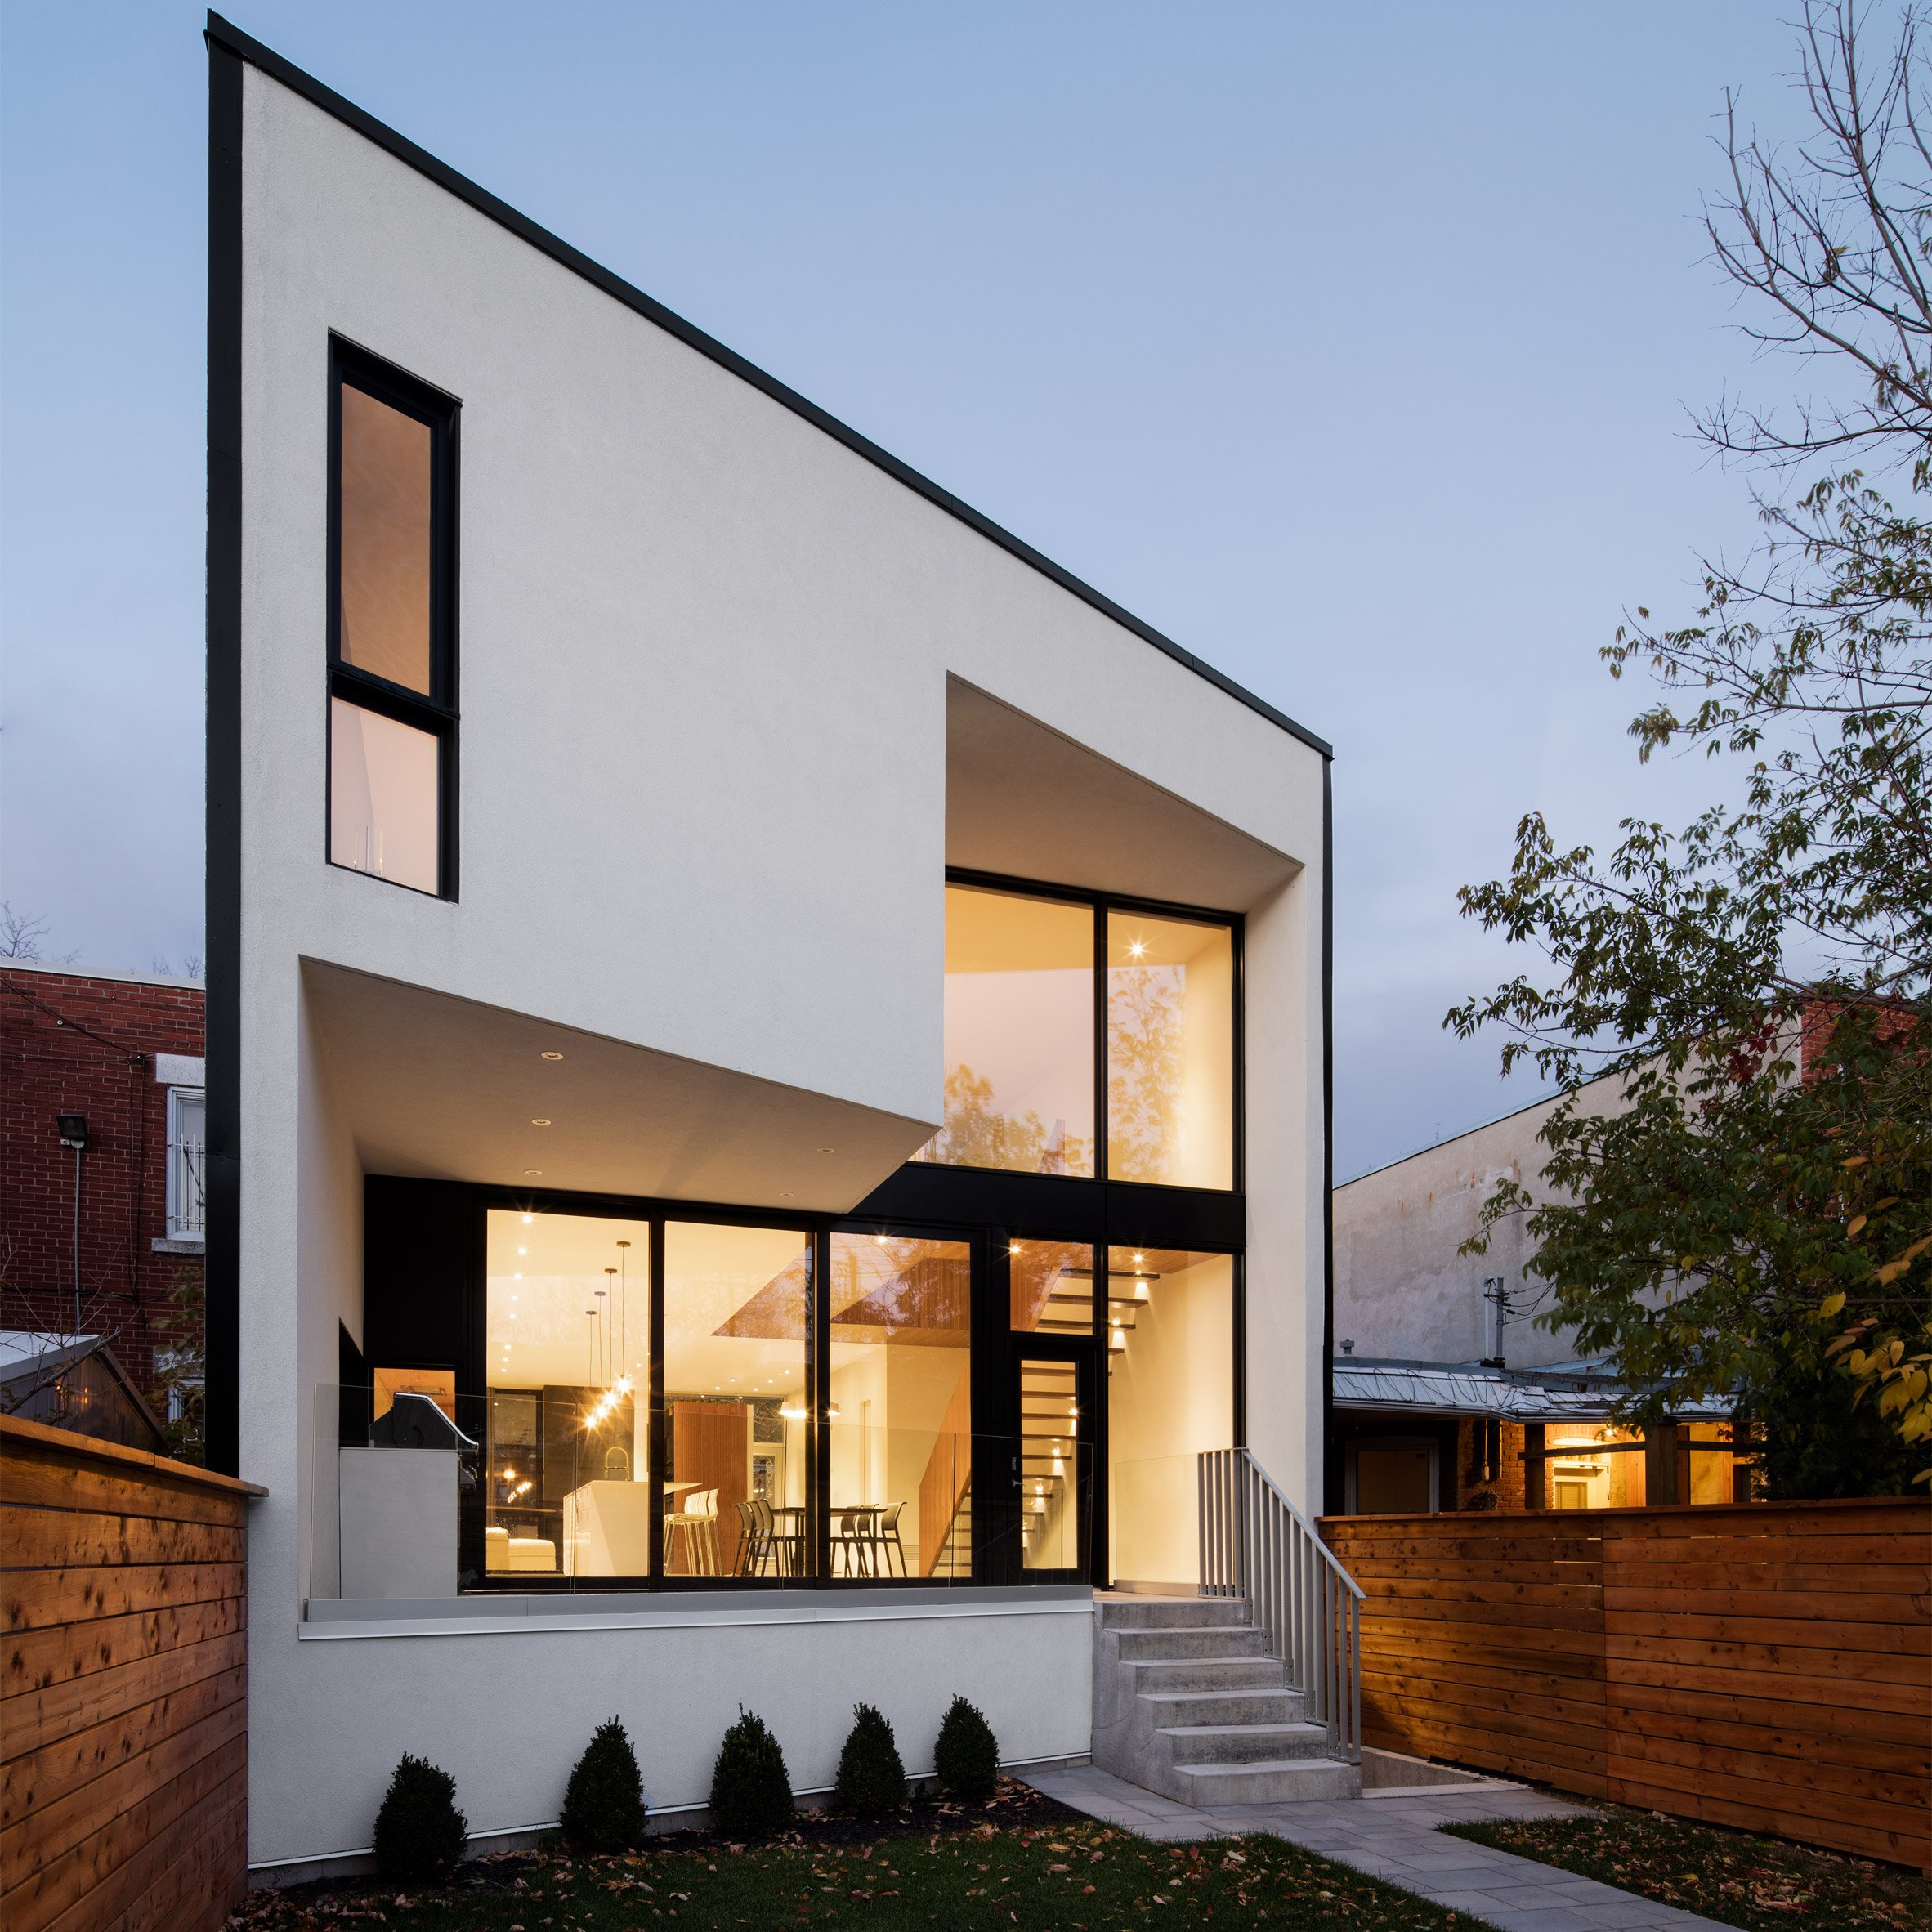 Architecture Microclimat builds minimal terrace house in traditional  Montreal neighbourhood